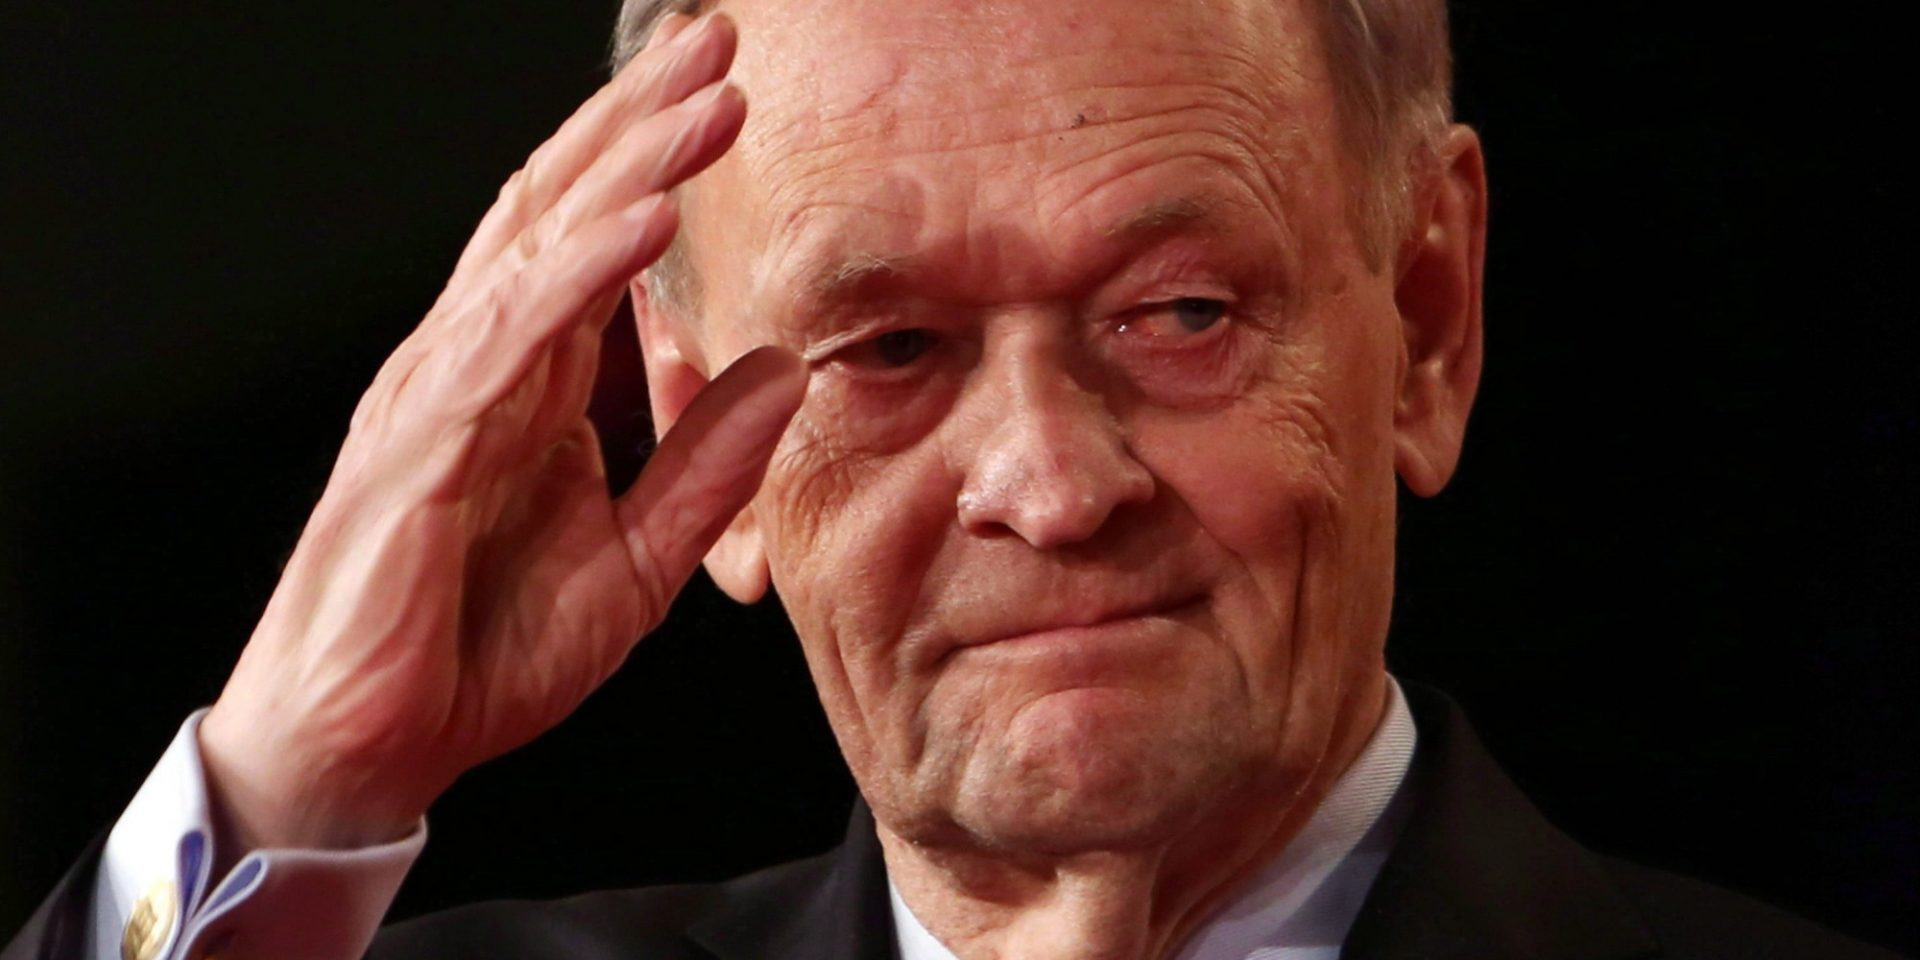 Former prime minister Jean Chretien saluts after addressing the Liberal Party leadership in Ottawa, Sunday April 14, 2013. Chretien is celebrated his 80th birthday Saturday. Chretien - who was PM for more than a decade between 1993 and 2003 - says he had a party with 80 family and friends Friday night in Montreal to mark the occasion. THE CANADIAN PRESS/Fred Chartrand